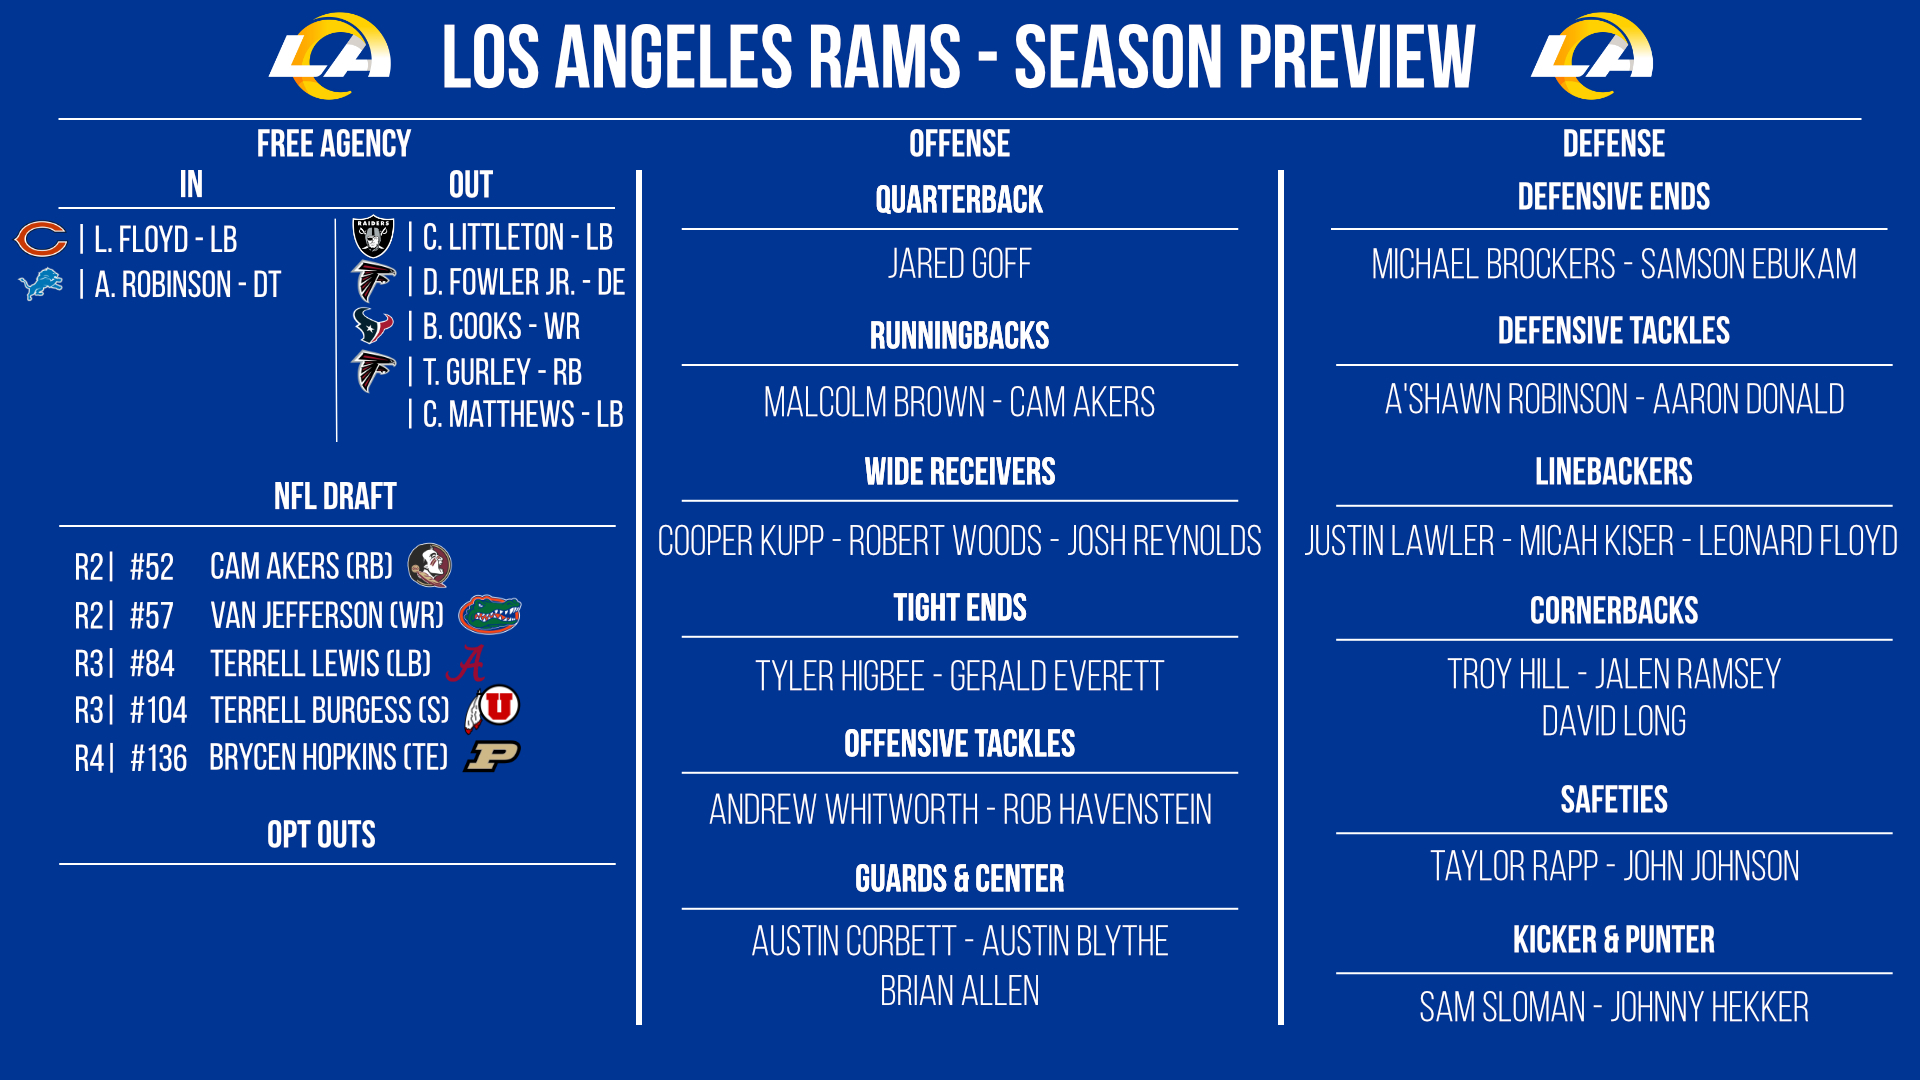 Los Angeles Rams preview